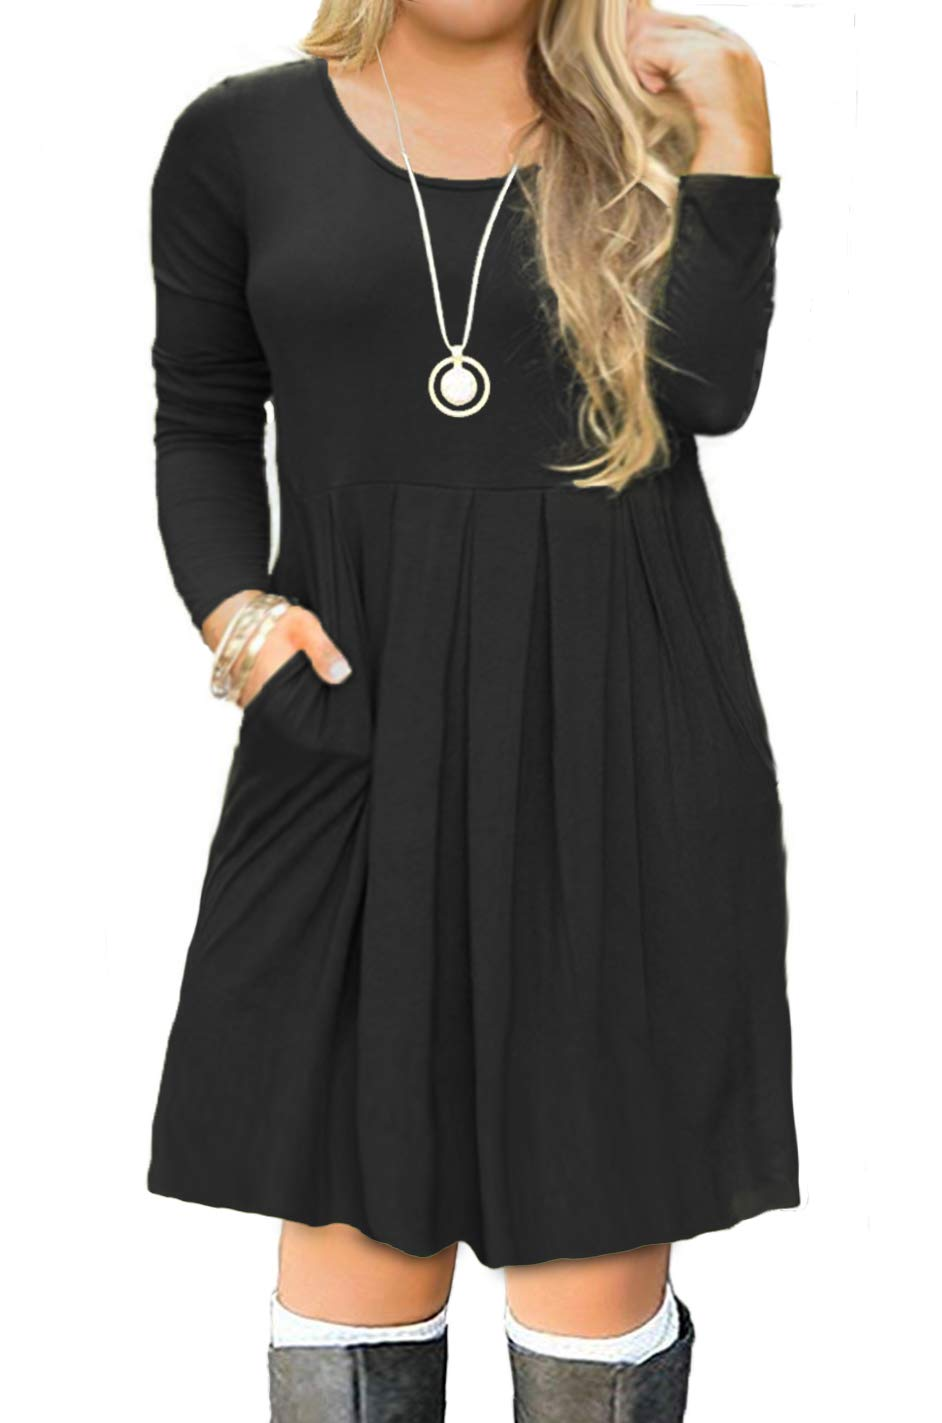 FOLUNSI Women's Plus Size Long Sleeve Pockets Pleated Loose Swing Casual Short T Shirt Dress Black 2XL